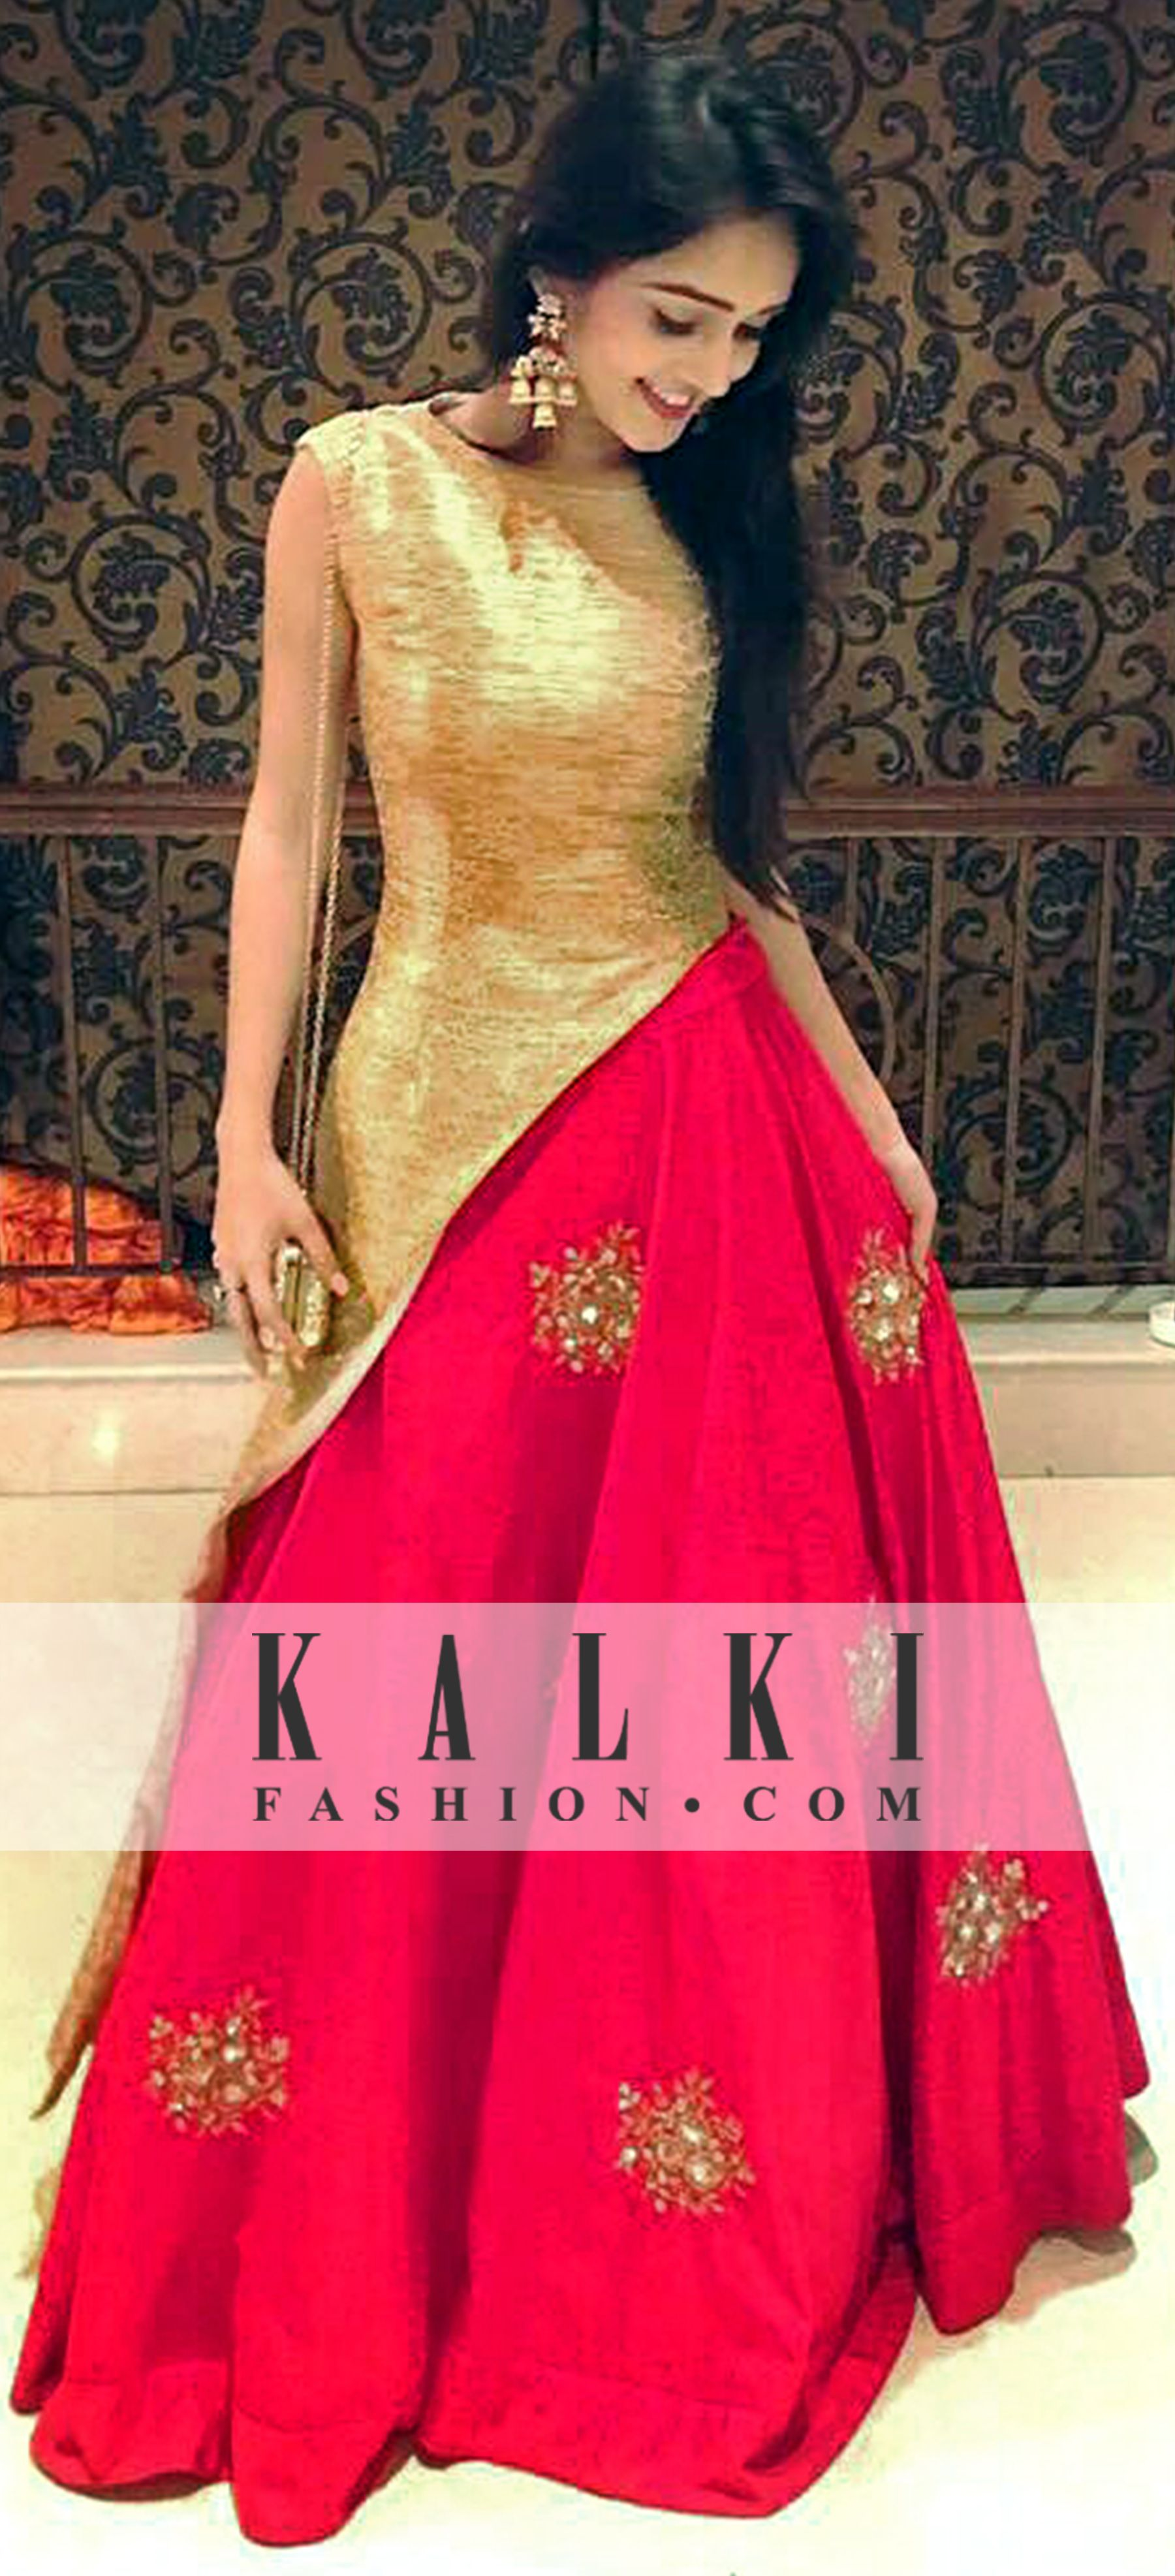 2cde64c3811d Shop for Womens Indian dresses, Indian Wedding and Party wear dresses and  other Indian Clothing Online at KalkiFashion.com , the largest online  ethnic wear ...